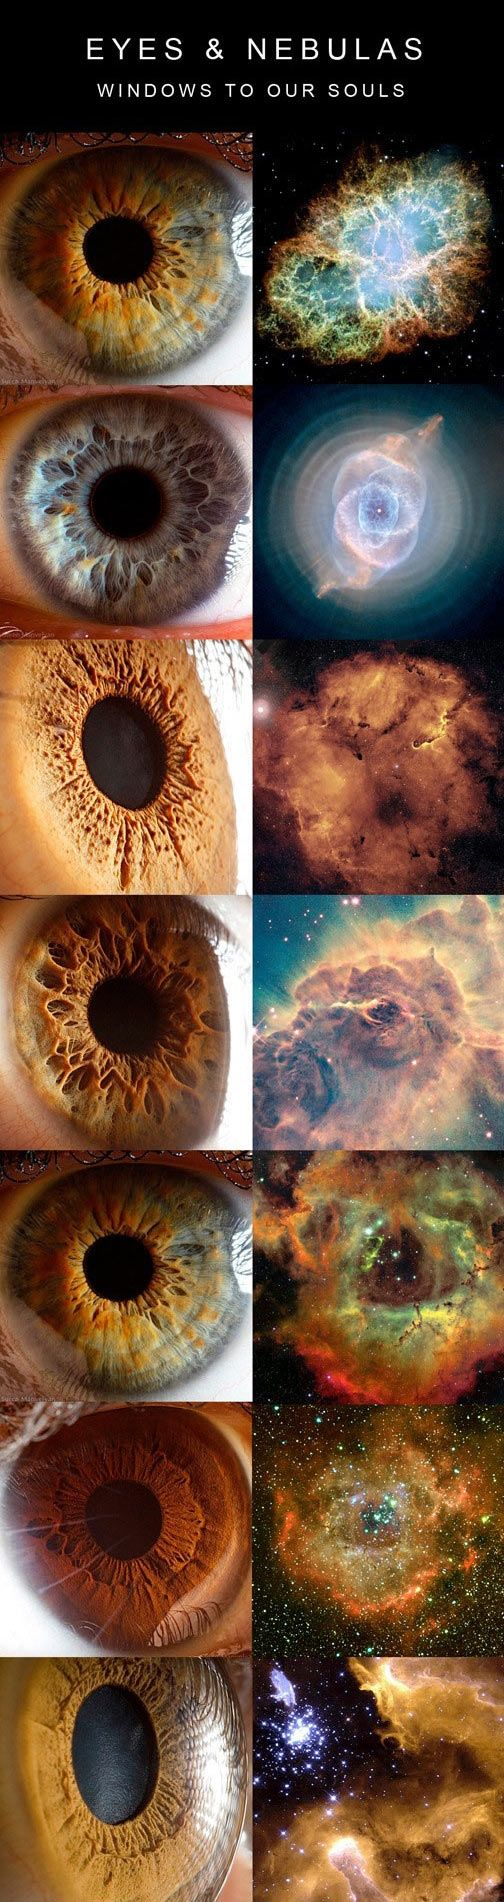 Eyes And Nebulas #photos, #bestofpinterest, #greatshots, https://facebook.com/apps/application.php?id=106186096099420